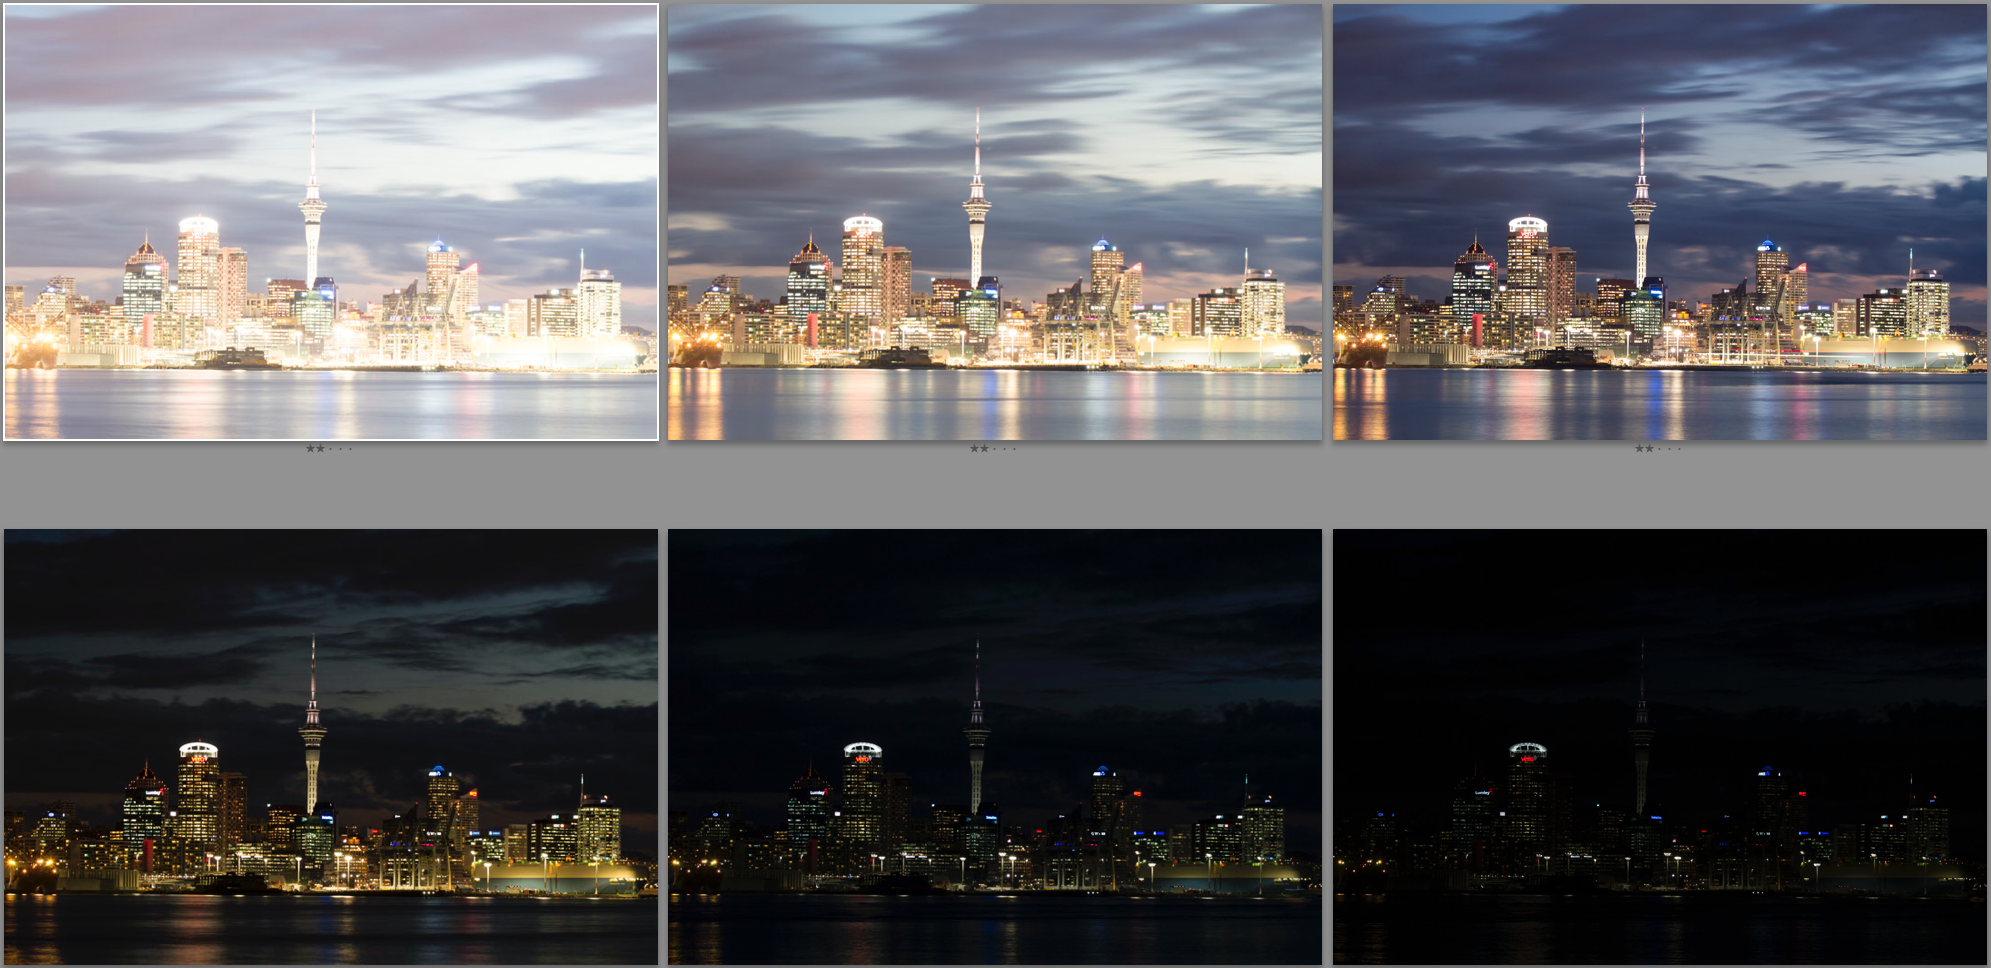 My 6 images straight out of camera.